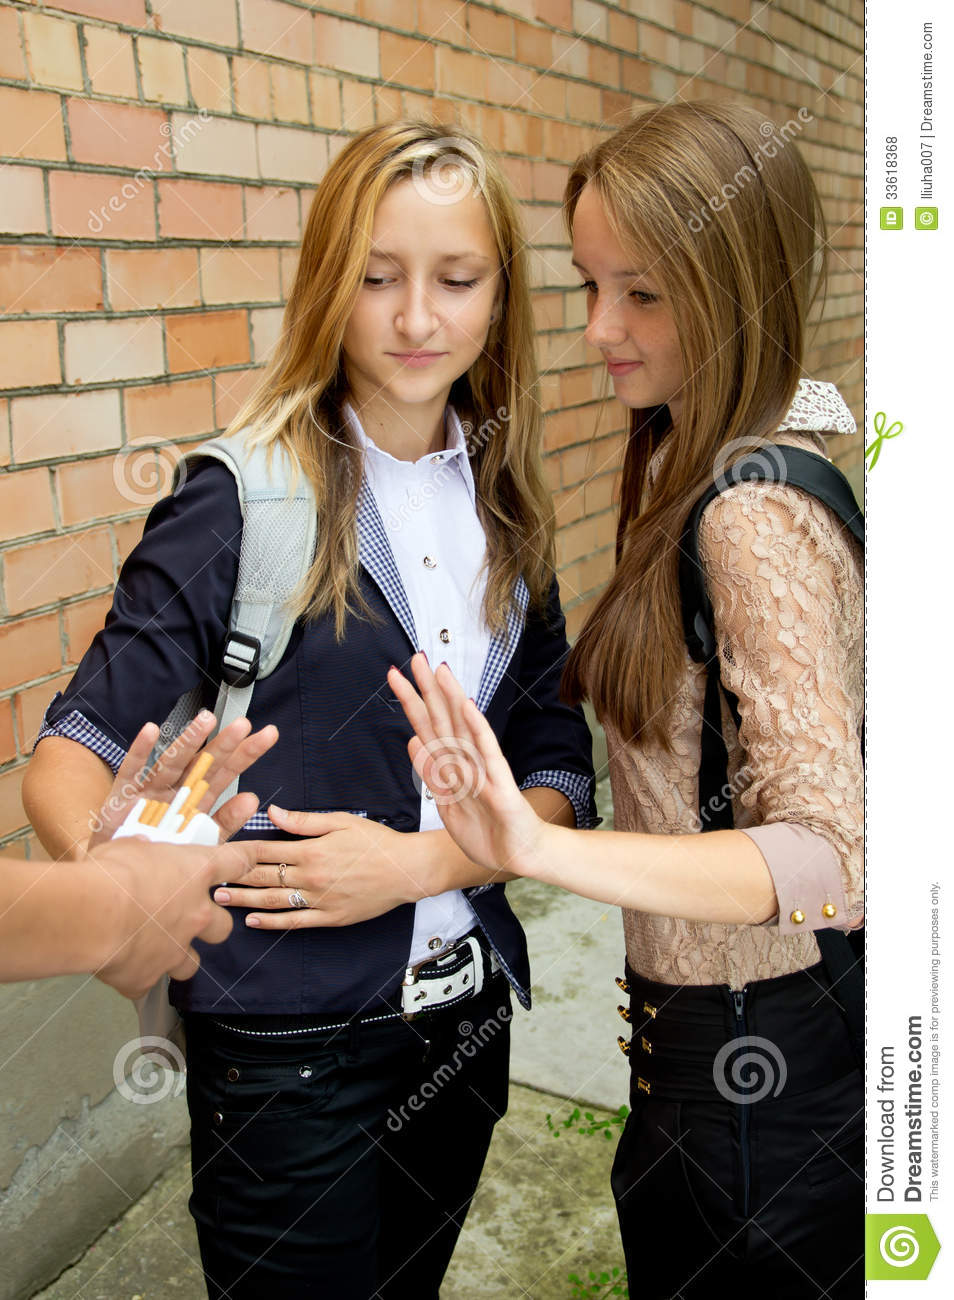 school smoker sexy teen picture